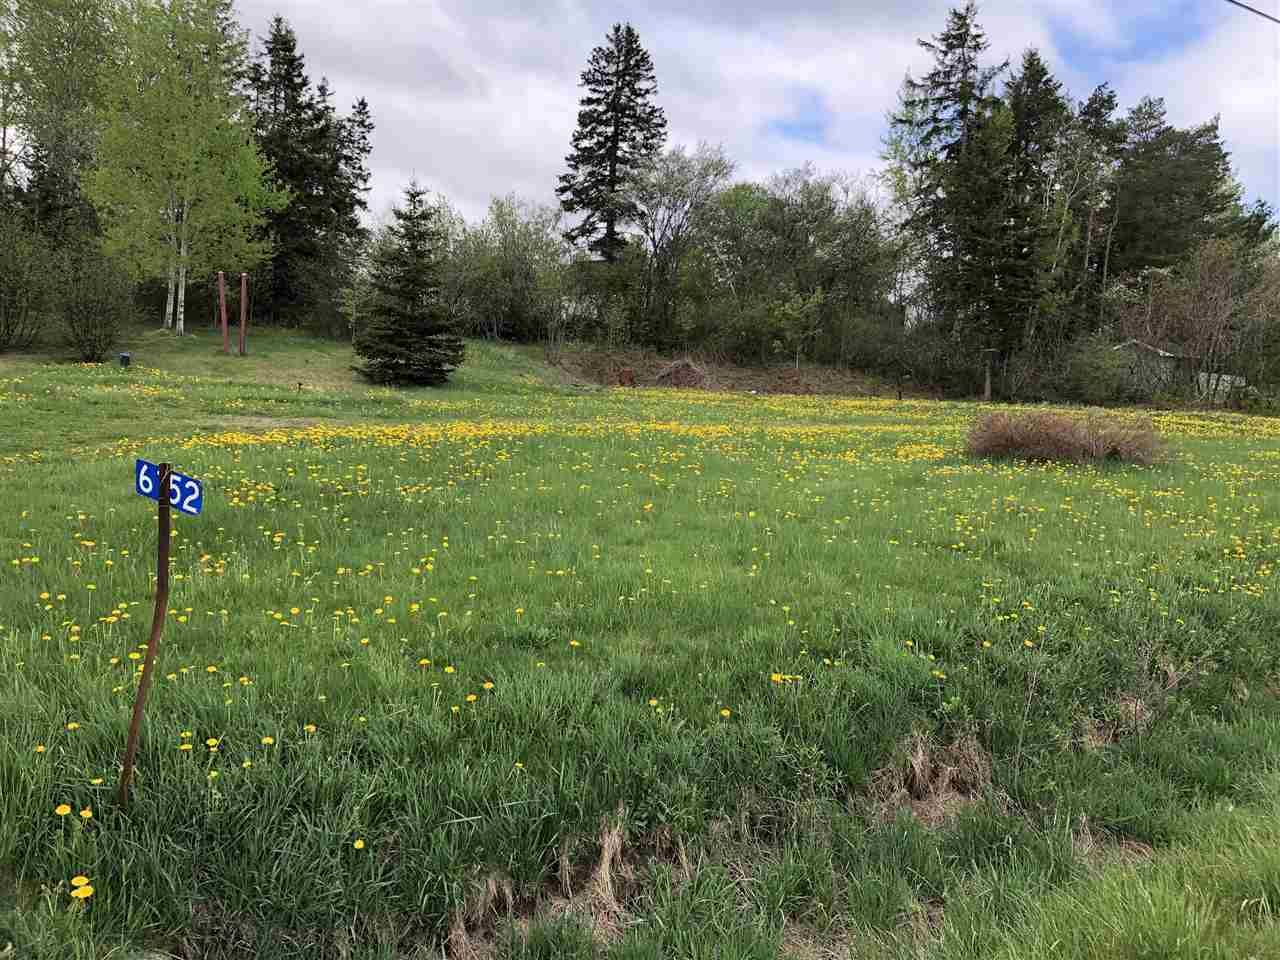 Main Photo: 6152 Highway 4 in Linacy: 108-Rural Pictou County Vacant Land for sale (Northern Region)  : MLS®# 202101547